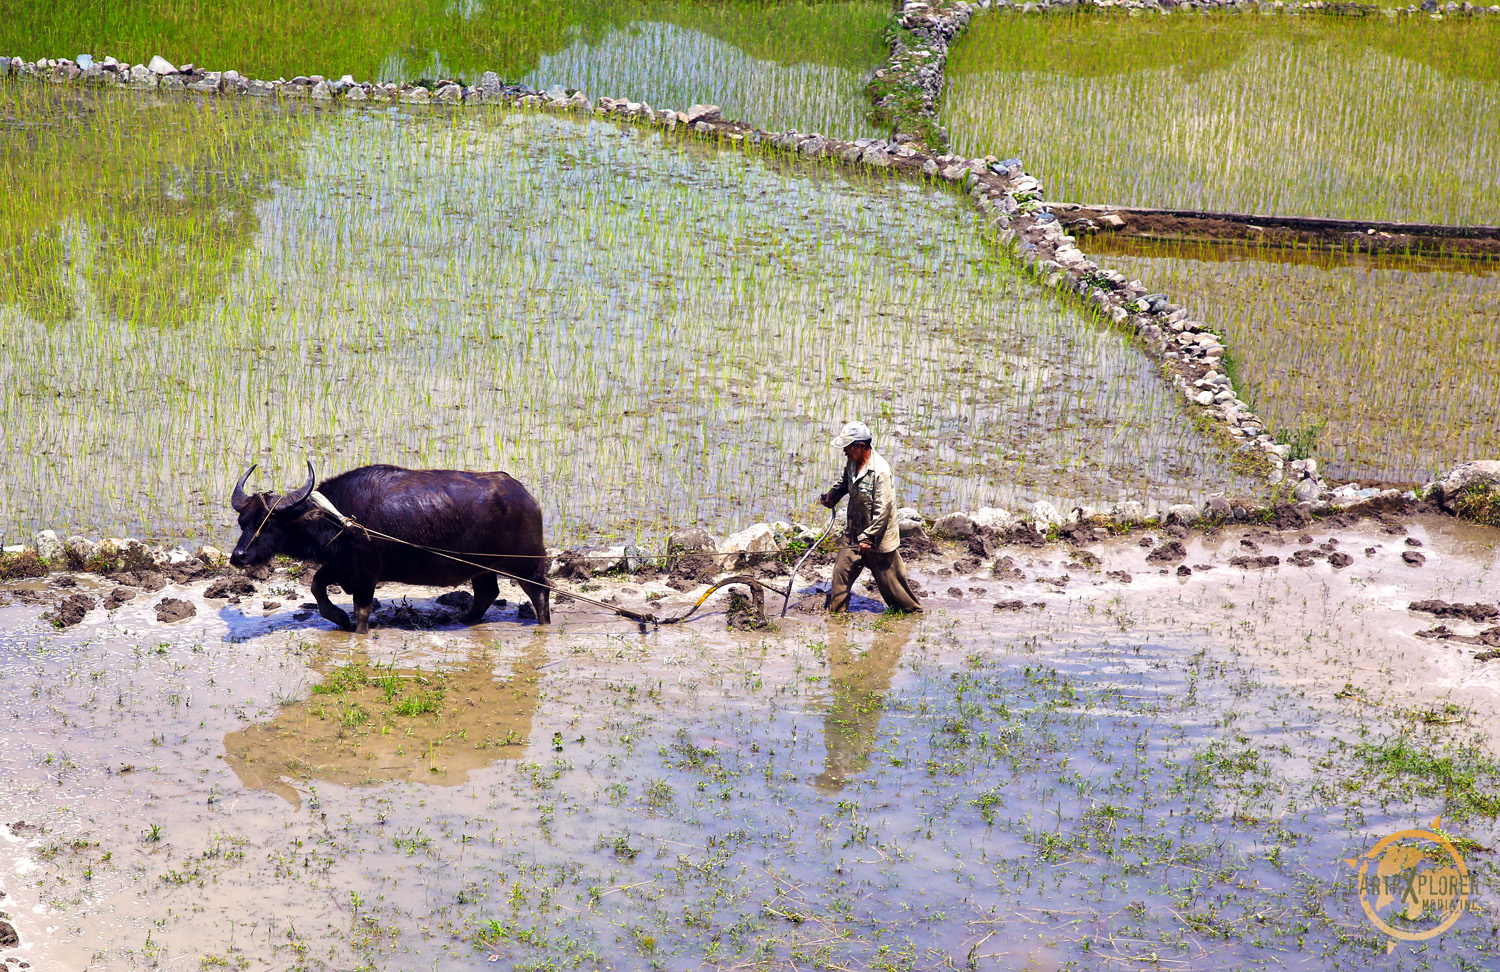 The carabao is a swamp type domestic water buffalo.